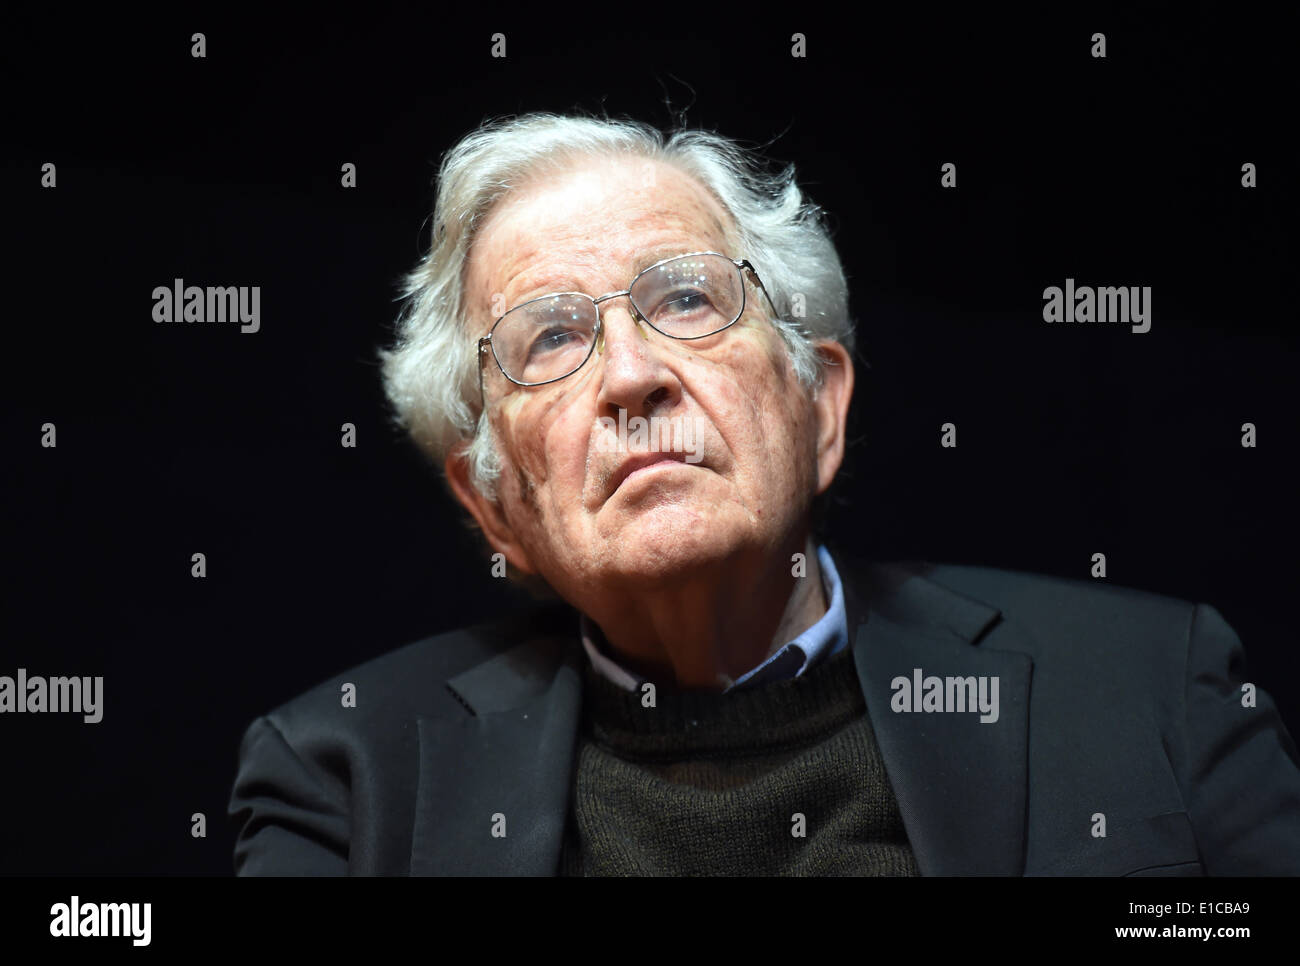 Karlsruhe, Germany. 30th May, 2014. The US american social critic Noam Chomsky delivers a speech in the Center for Art and Media in Karlsruhe, Germany, 30 May 2014. Photo: Uli Deck/dpa/Alamy Live News - Stock Image